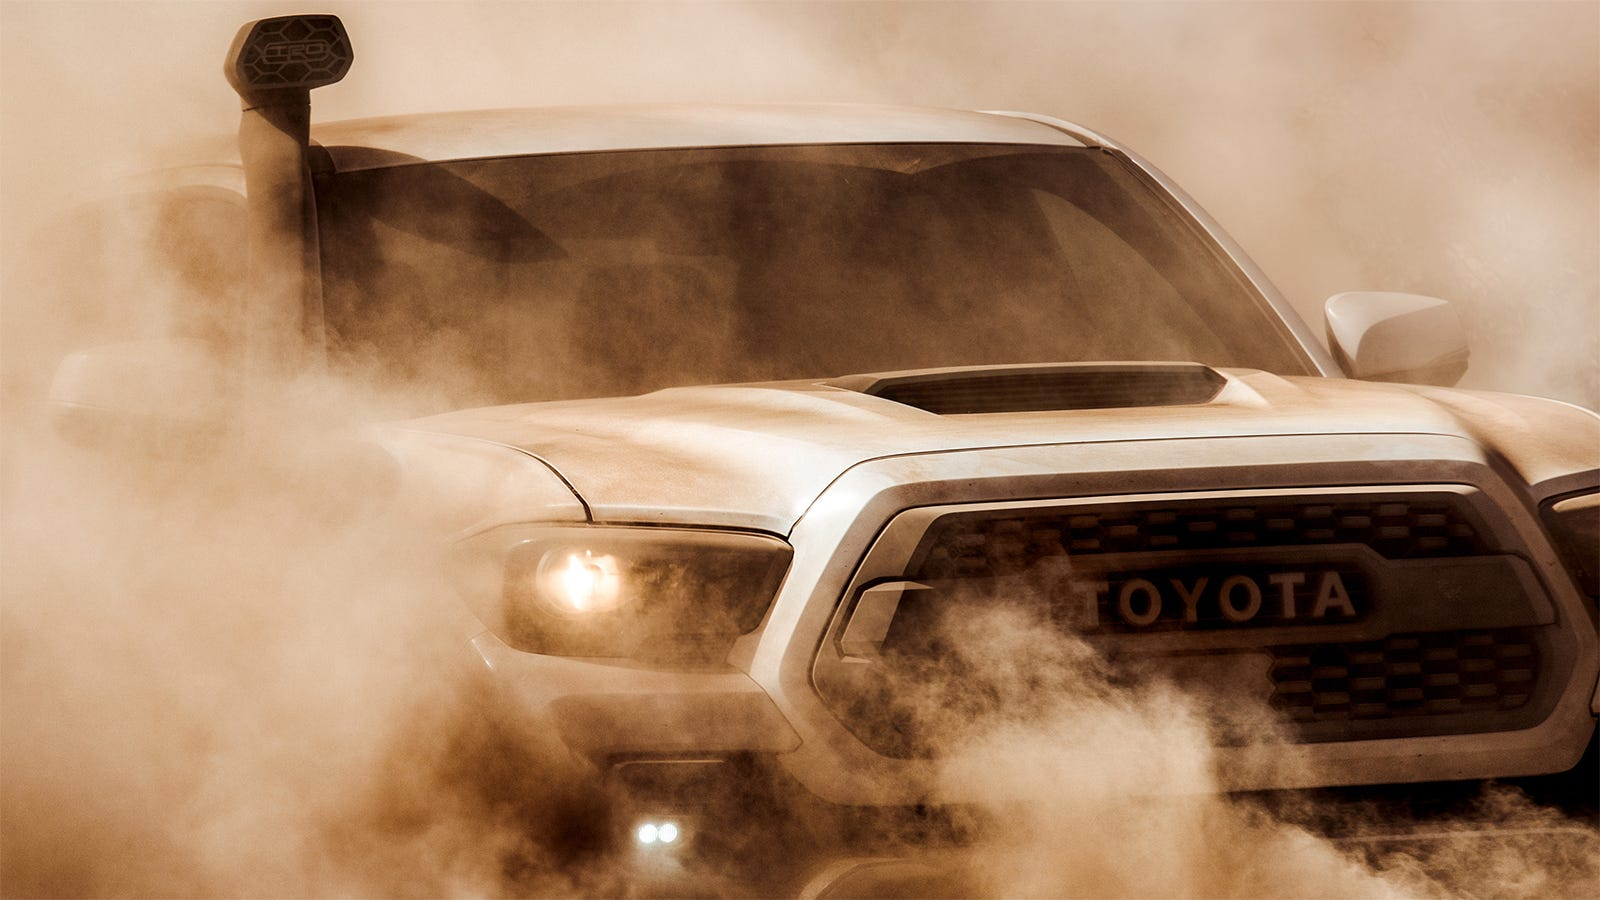 Trd Pro Tundra >> The 2019 Toyota Tacoma TRD Pro Gets A Goddamned Snorkel